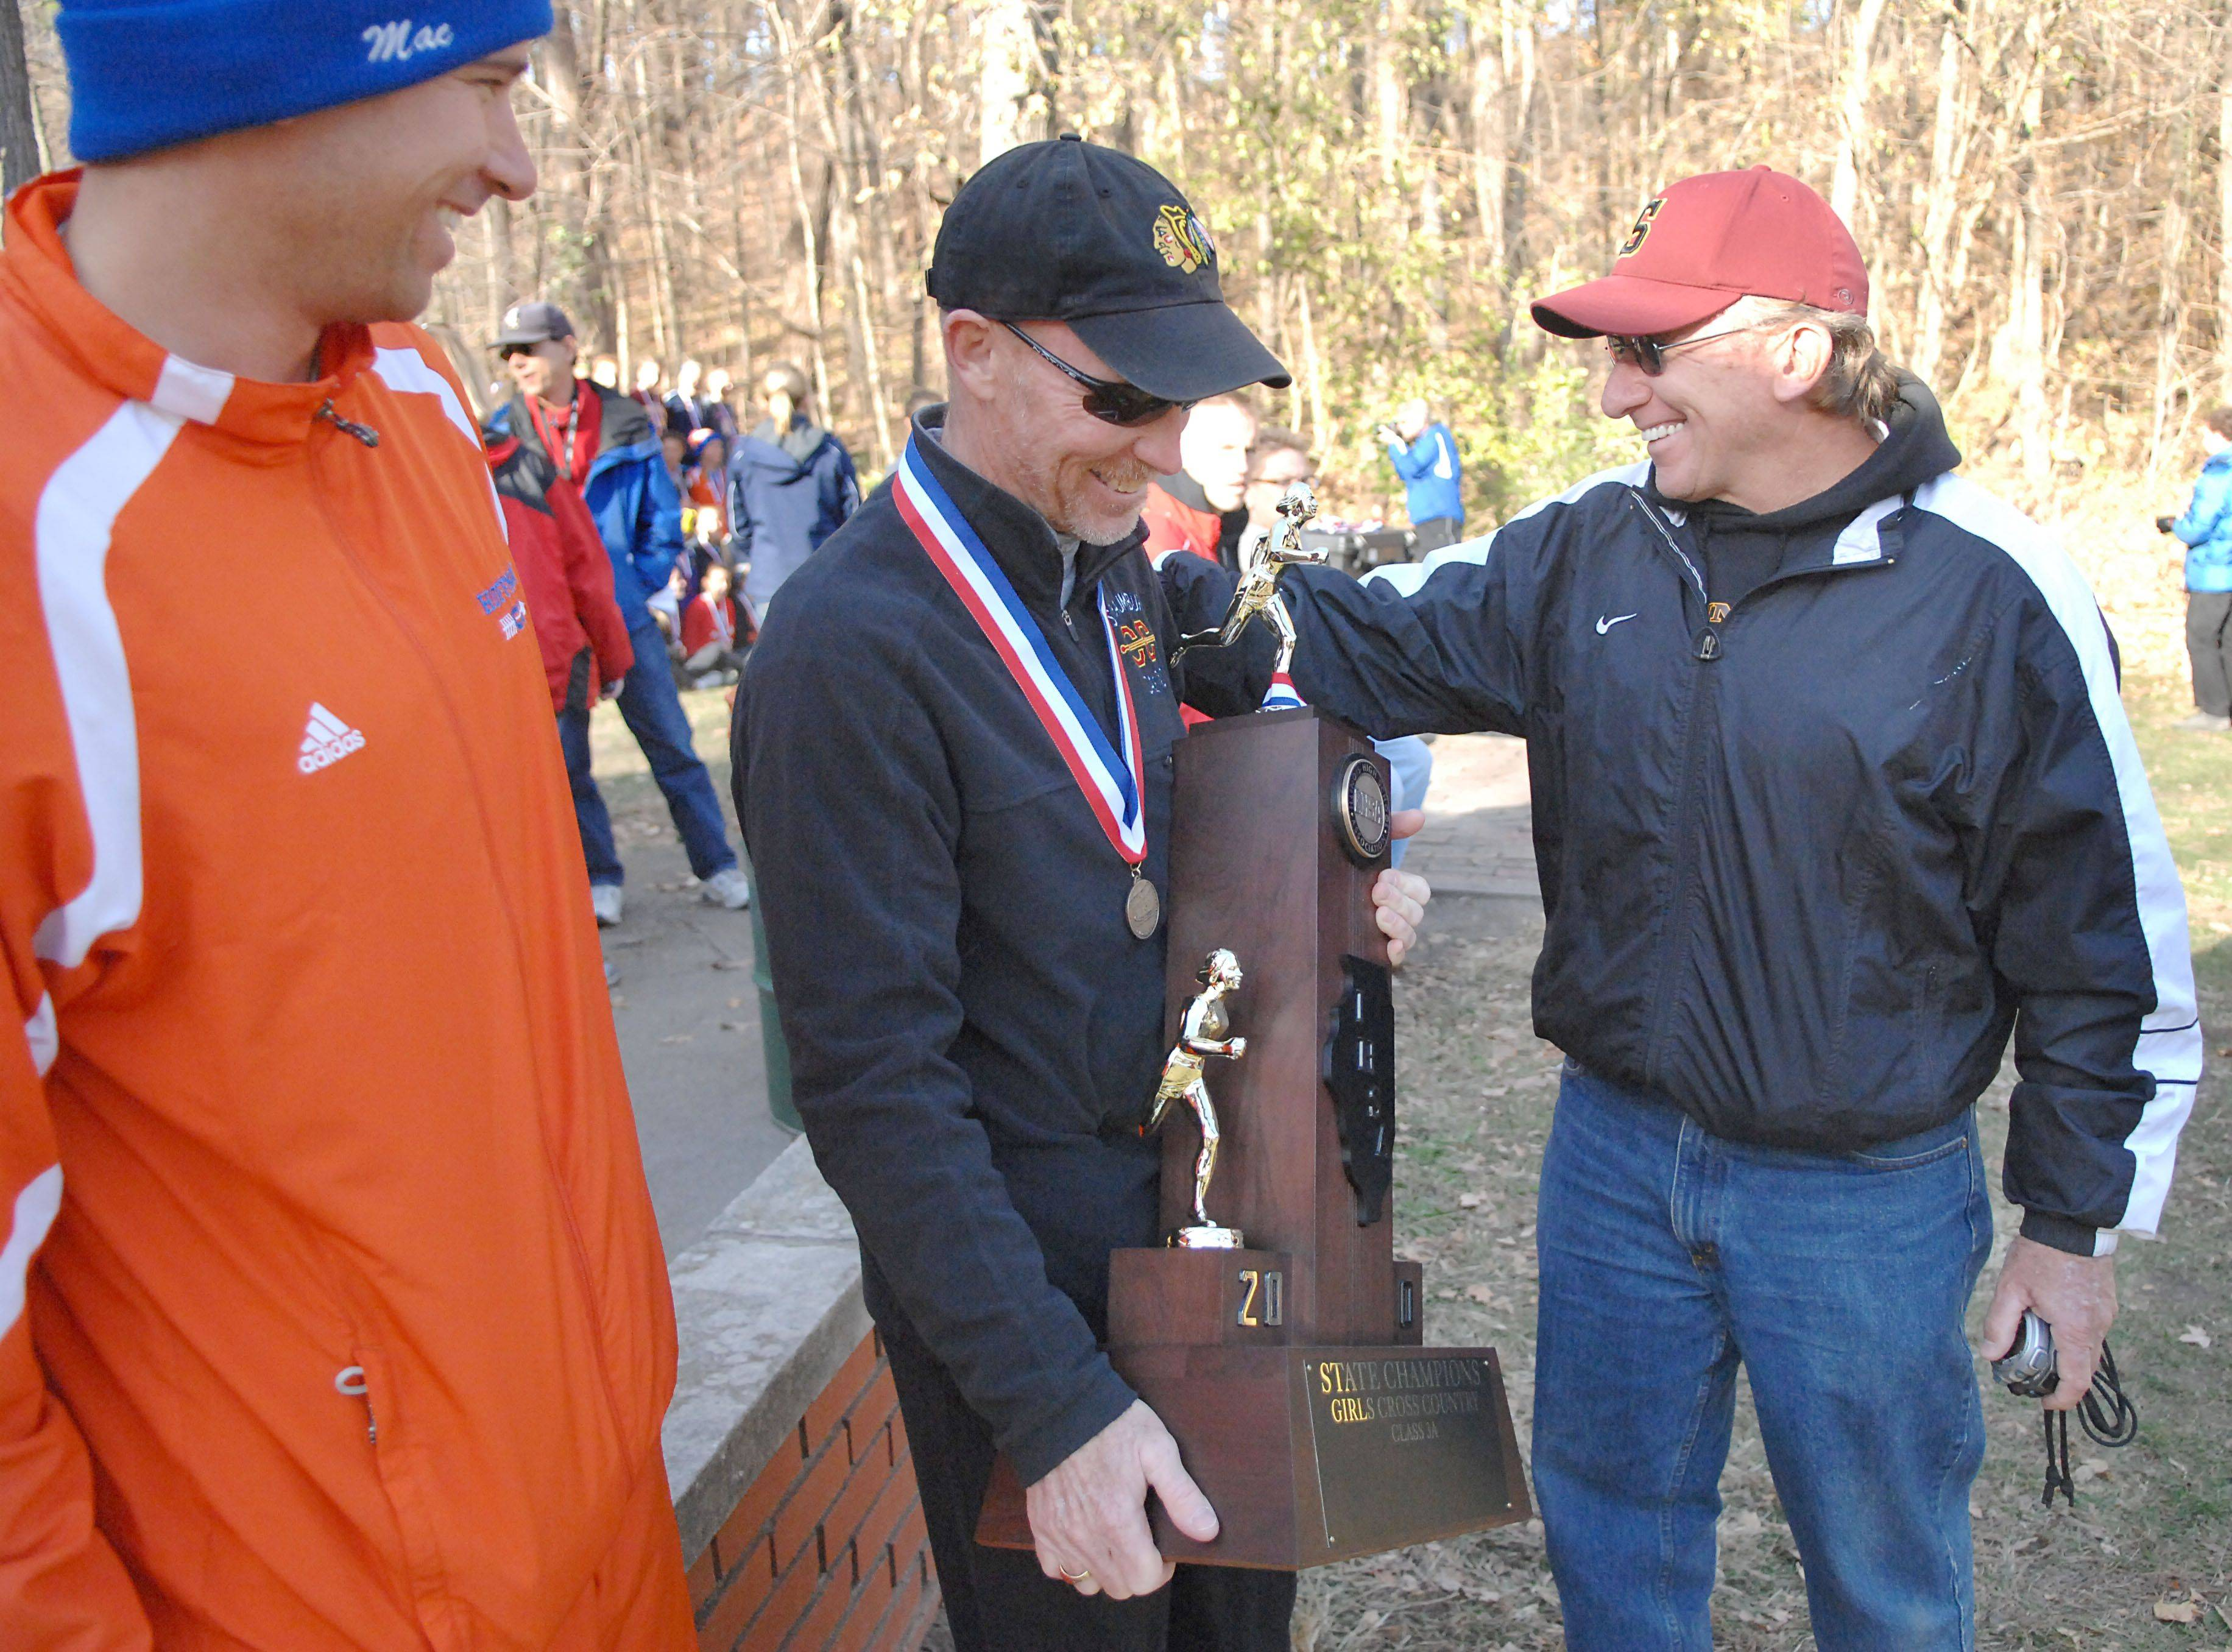 Schaumburg head coach Jon Macnider, center, is congratulated by brother, Jim, right, after winning the first place 3A cross country trophy in Peoria on Saturday, November 6. On left is Jim's son, Kirk Macnider, who coaches at Hoffman Estates.